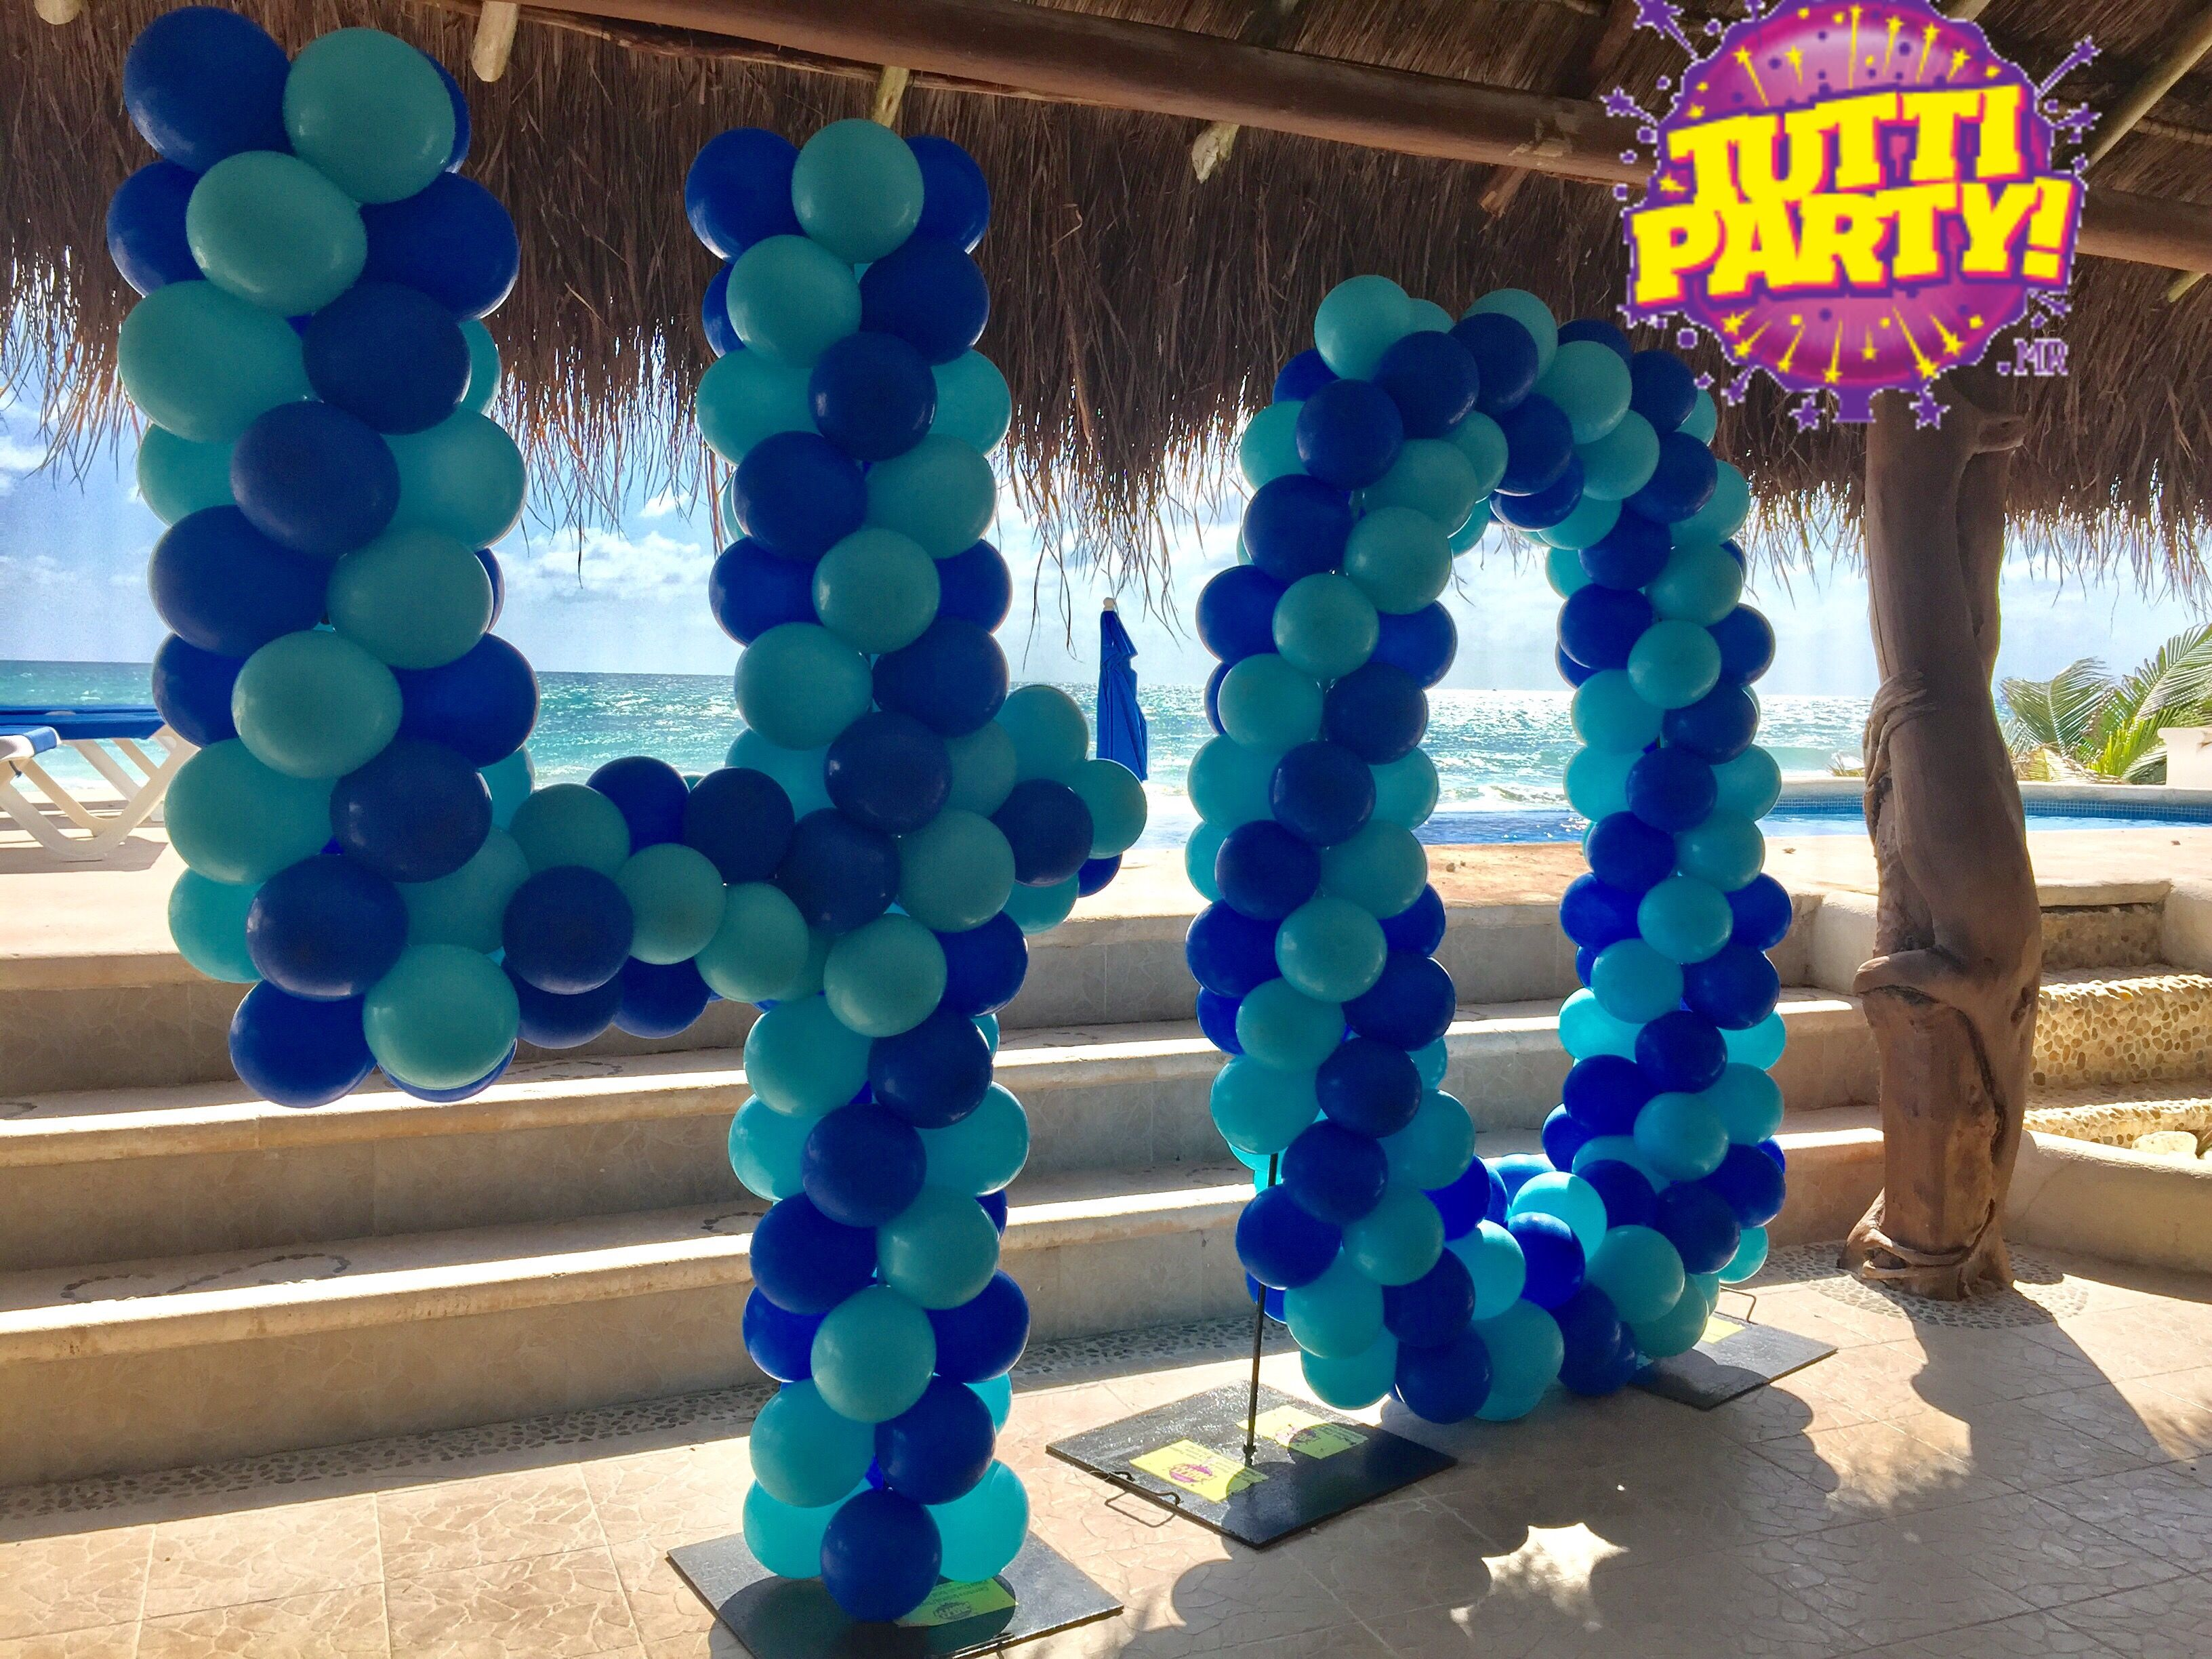 decoration home d incredible themed cor design image gallery best beach of party decor simple and decorations interior